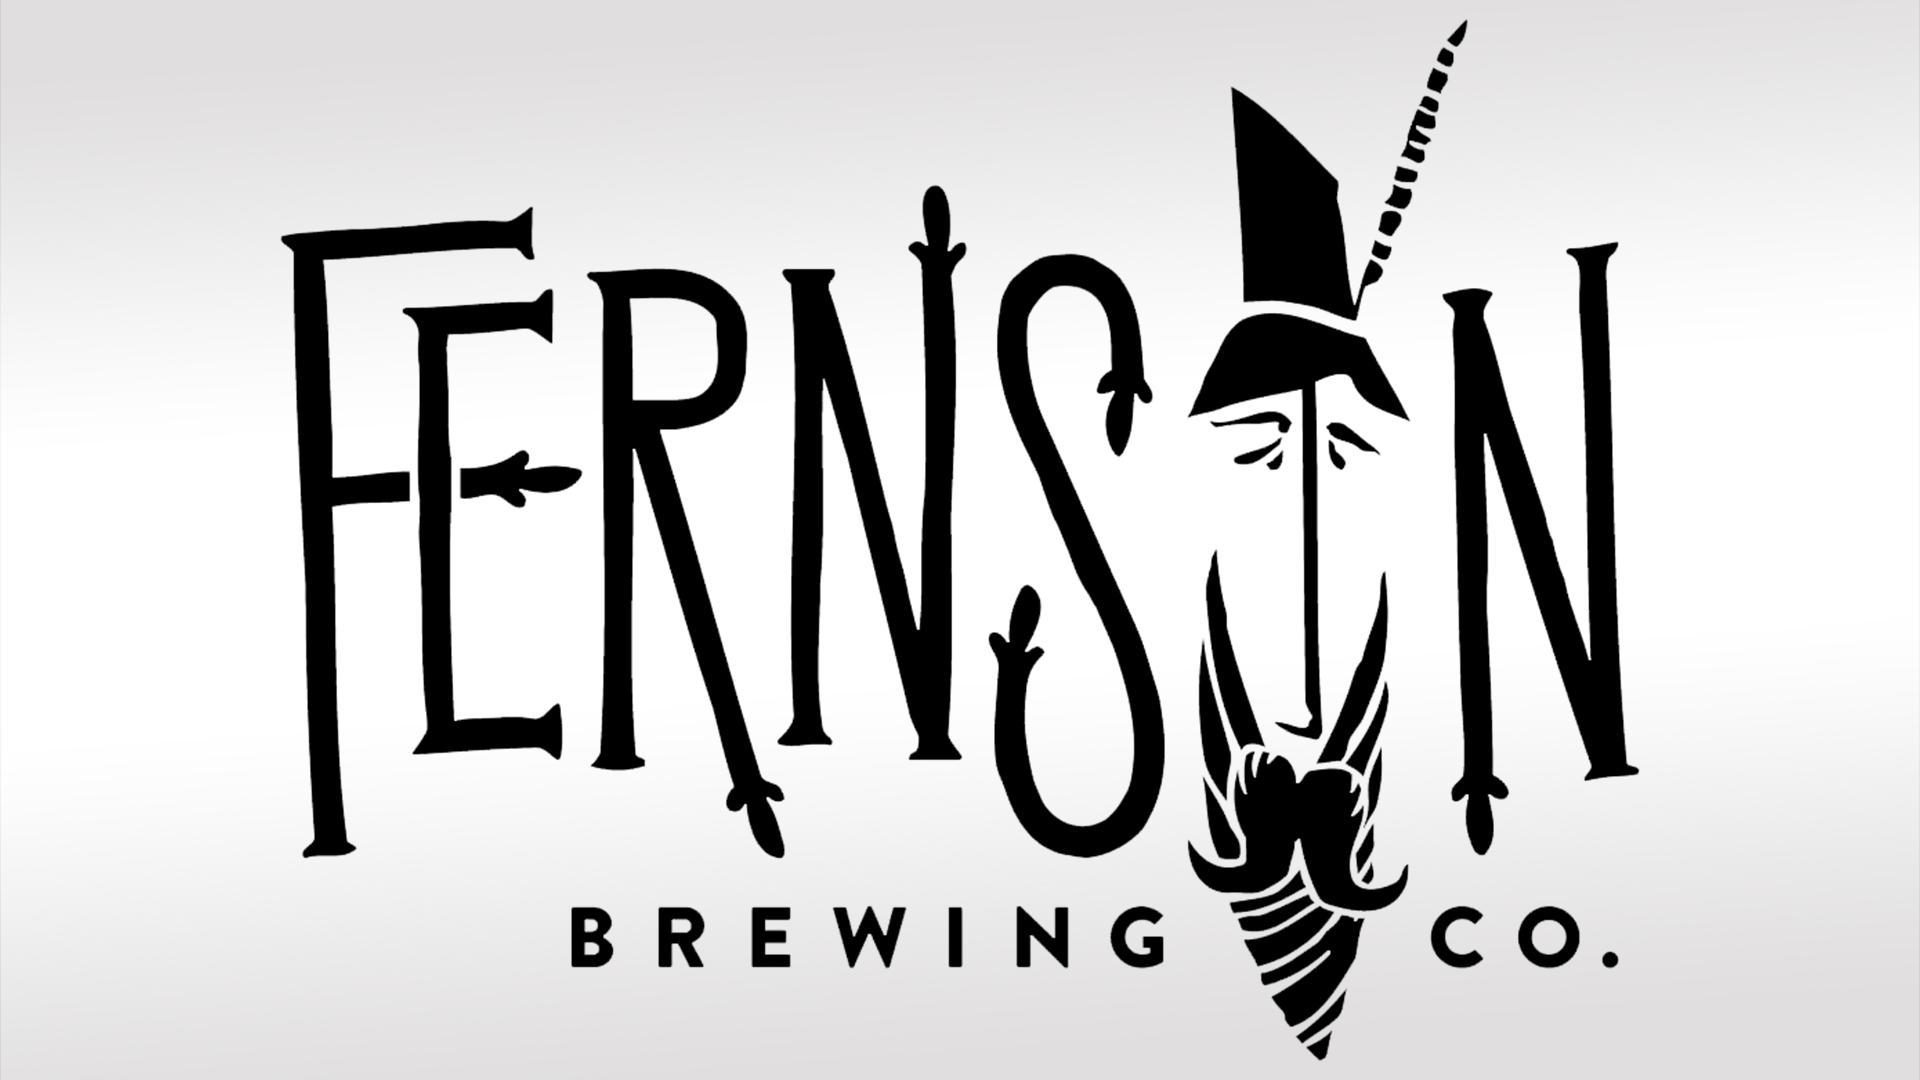 Fernson Brewing Company Expanding In Downtown Sioux Falls